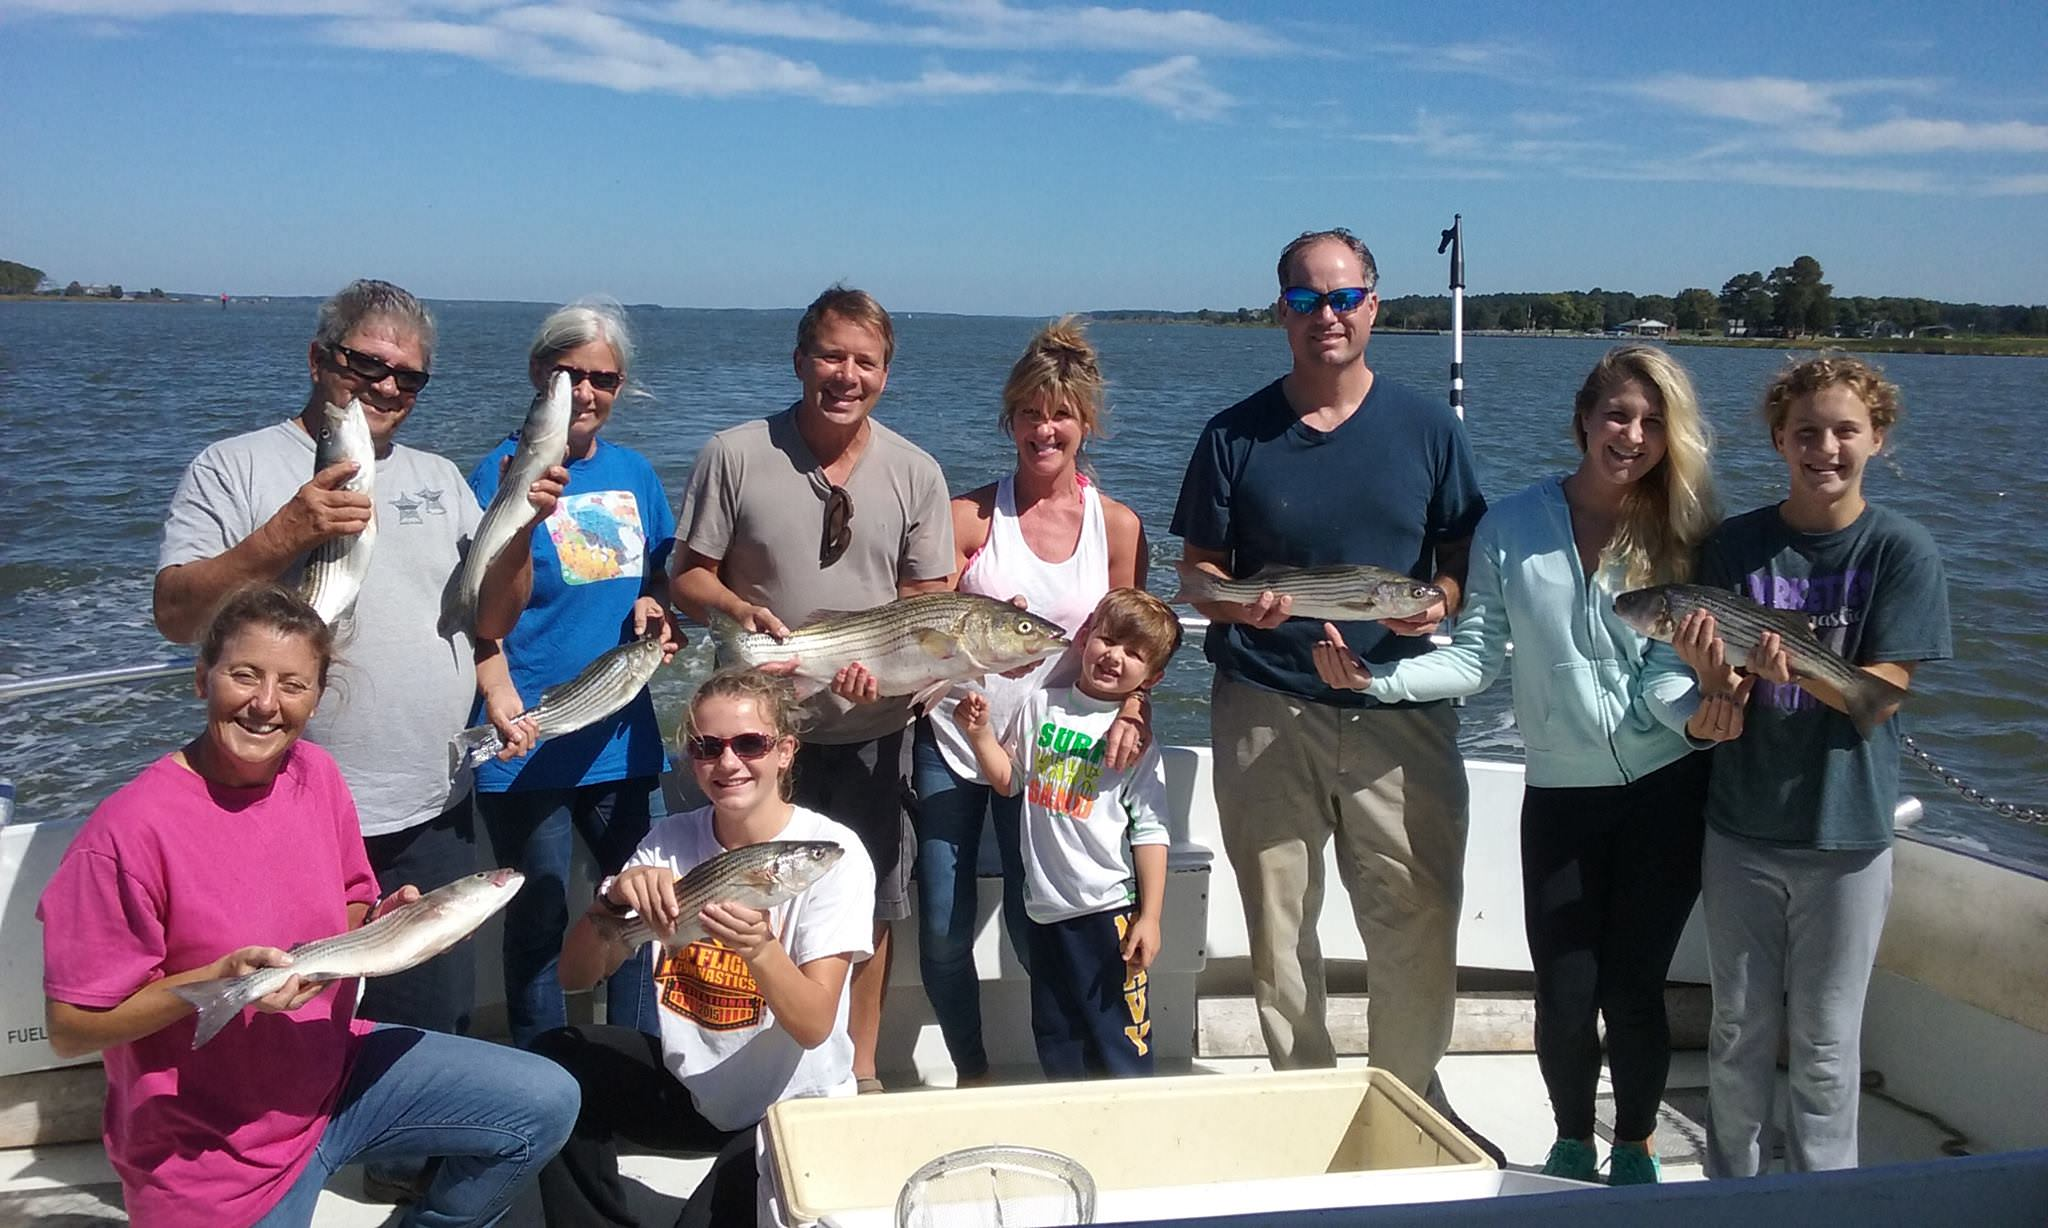 More Rockfishing On Maryland's Chesapeake Bay!